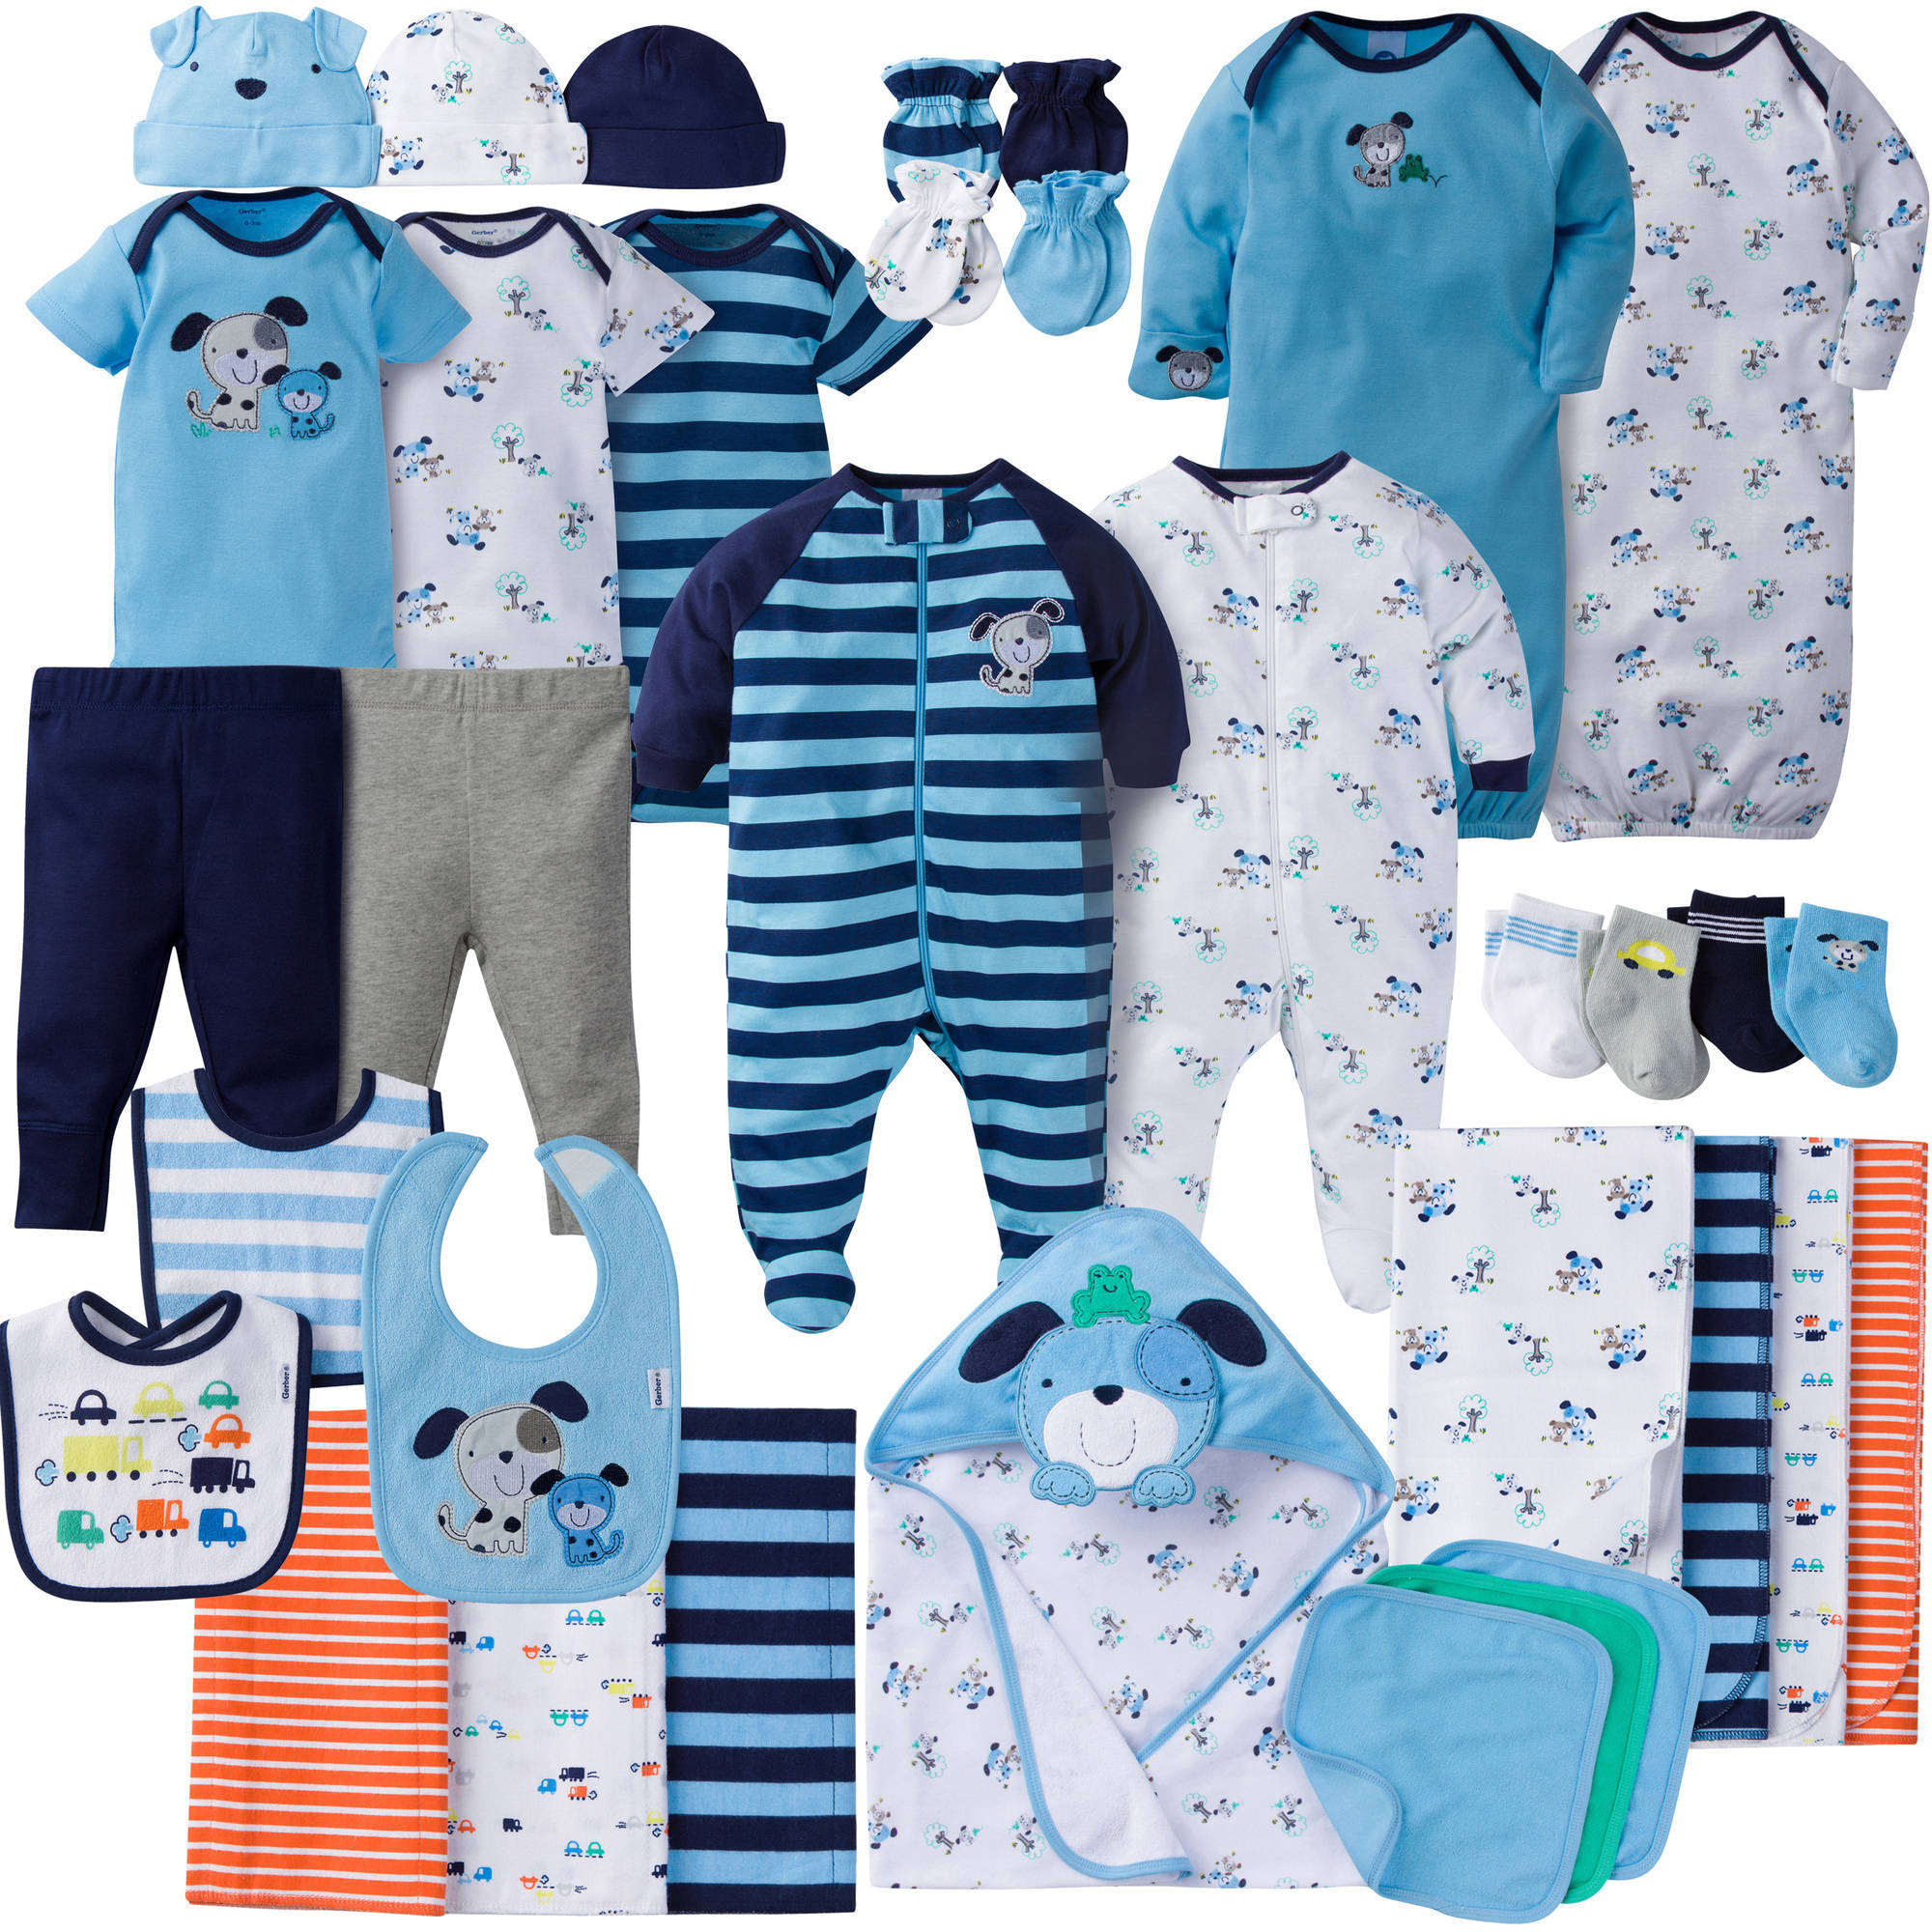 Newborn Baby Boy Perfect Baby Shower Gift Layette Set, 34-Piece